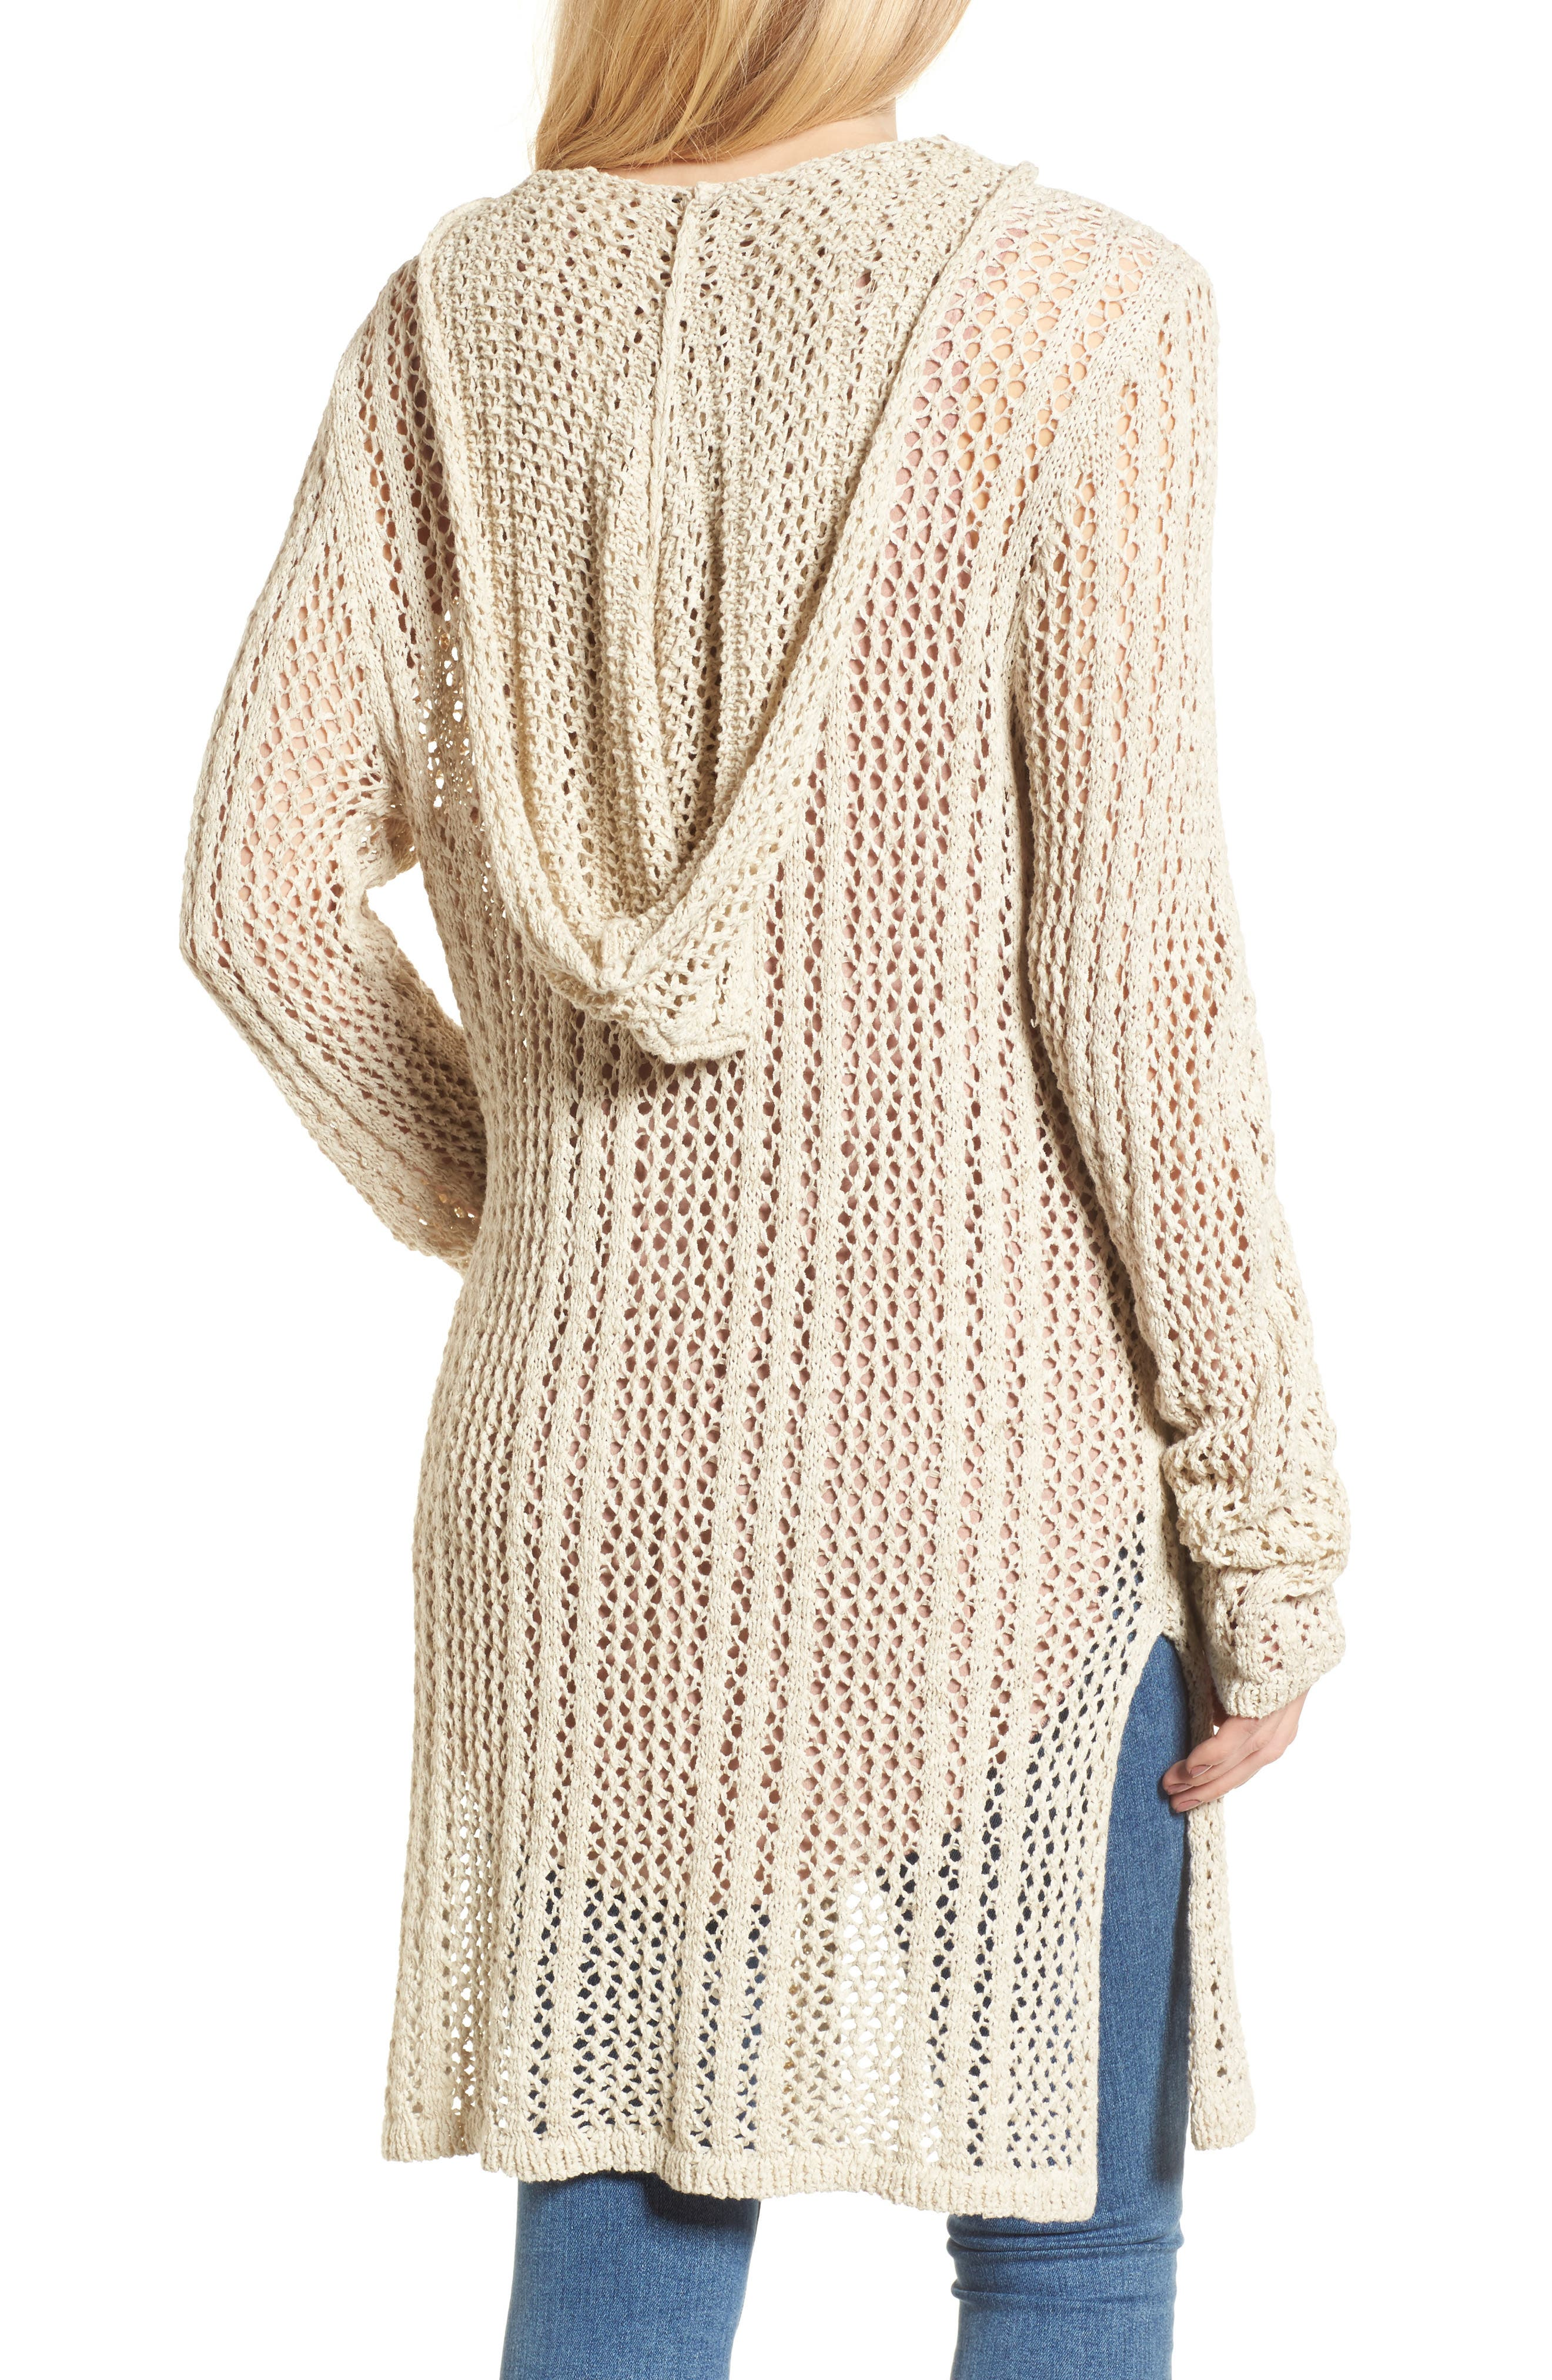 Knox Hooded Cardigan,                             Alternate thumbnail 4, color,